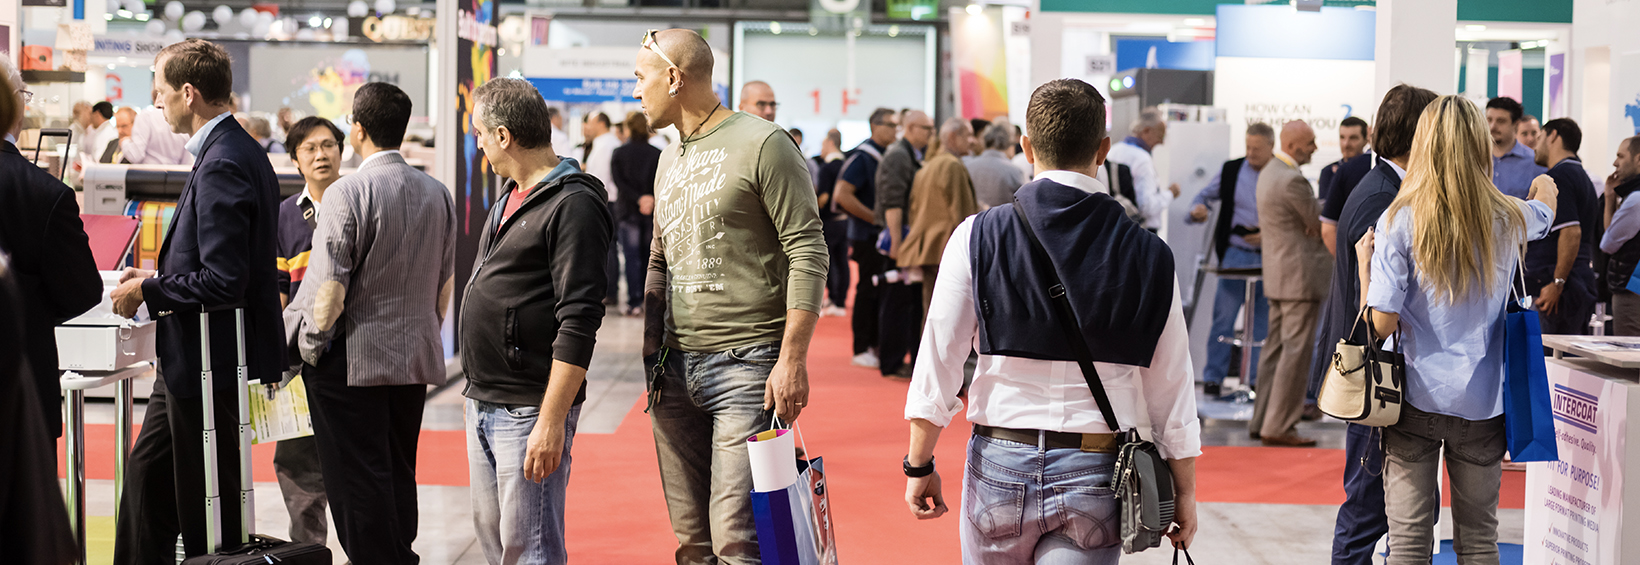 people at a trade show